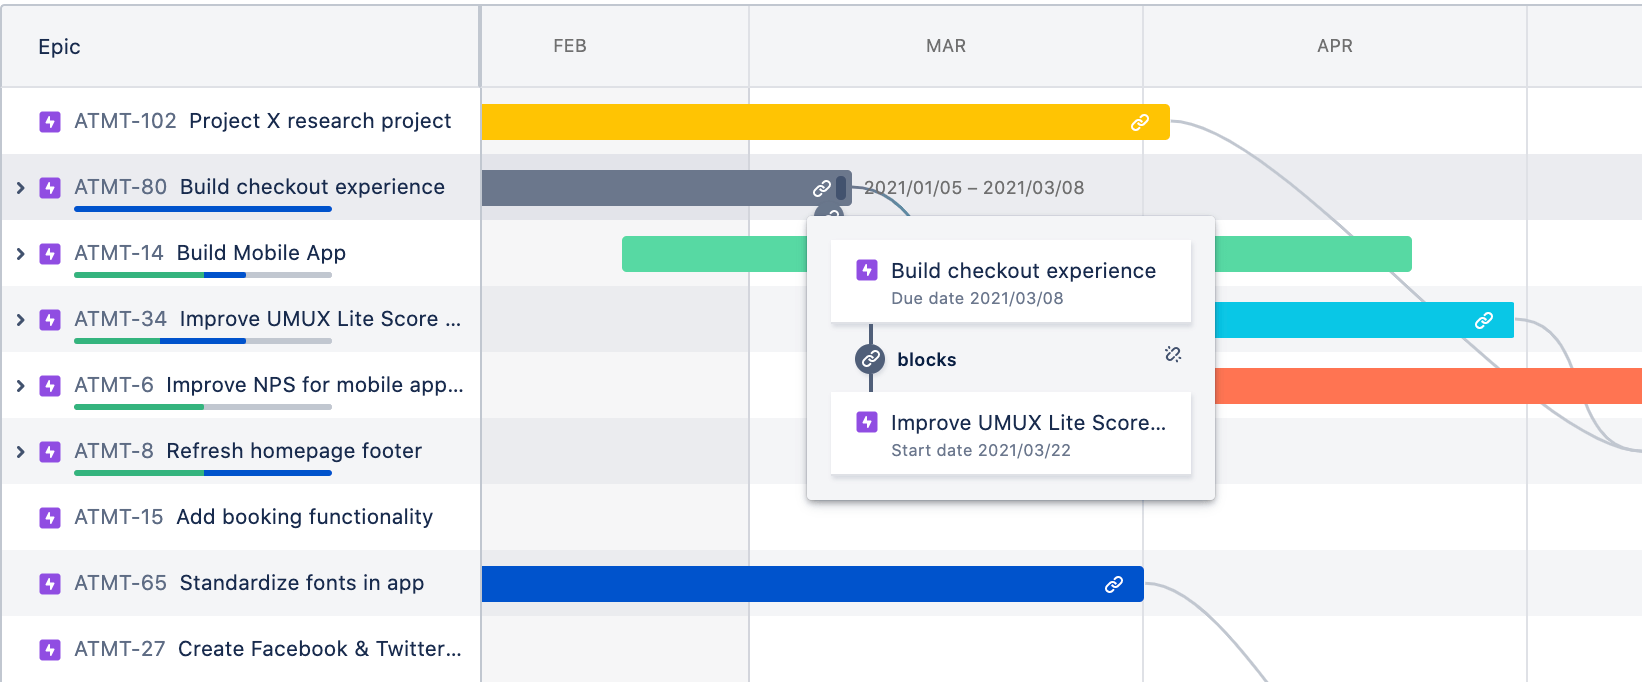 View of dependencies on the roadmap in Jira Software